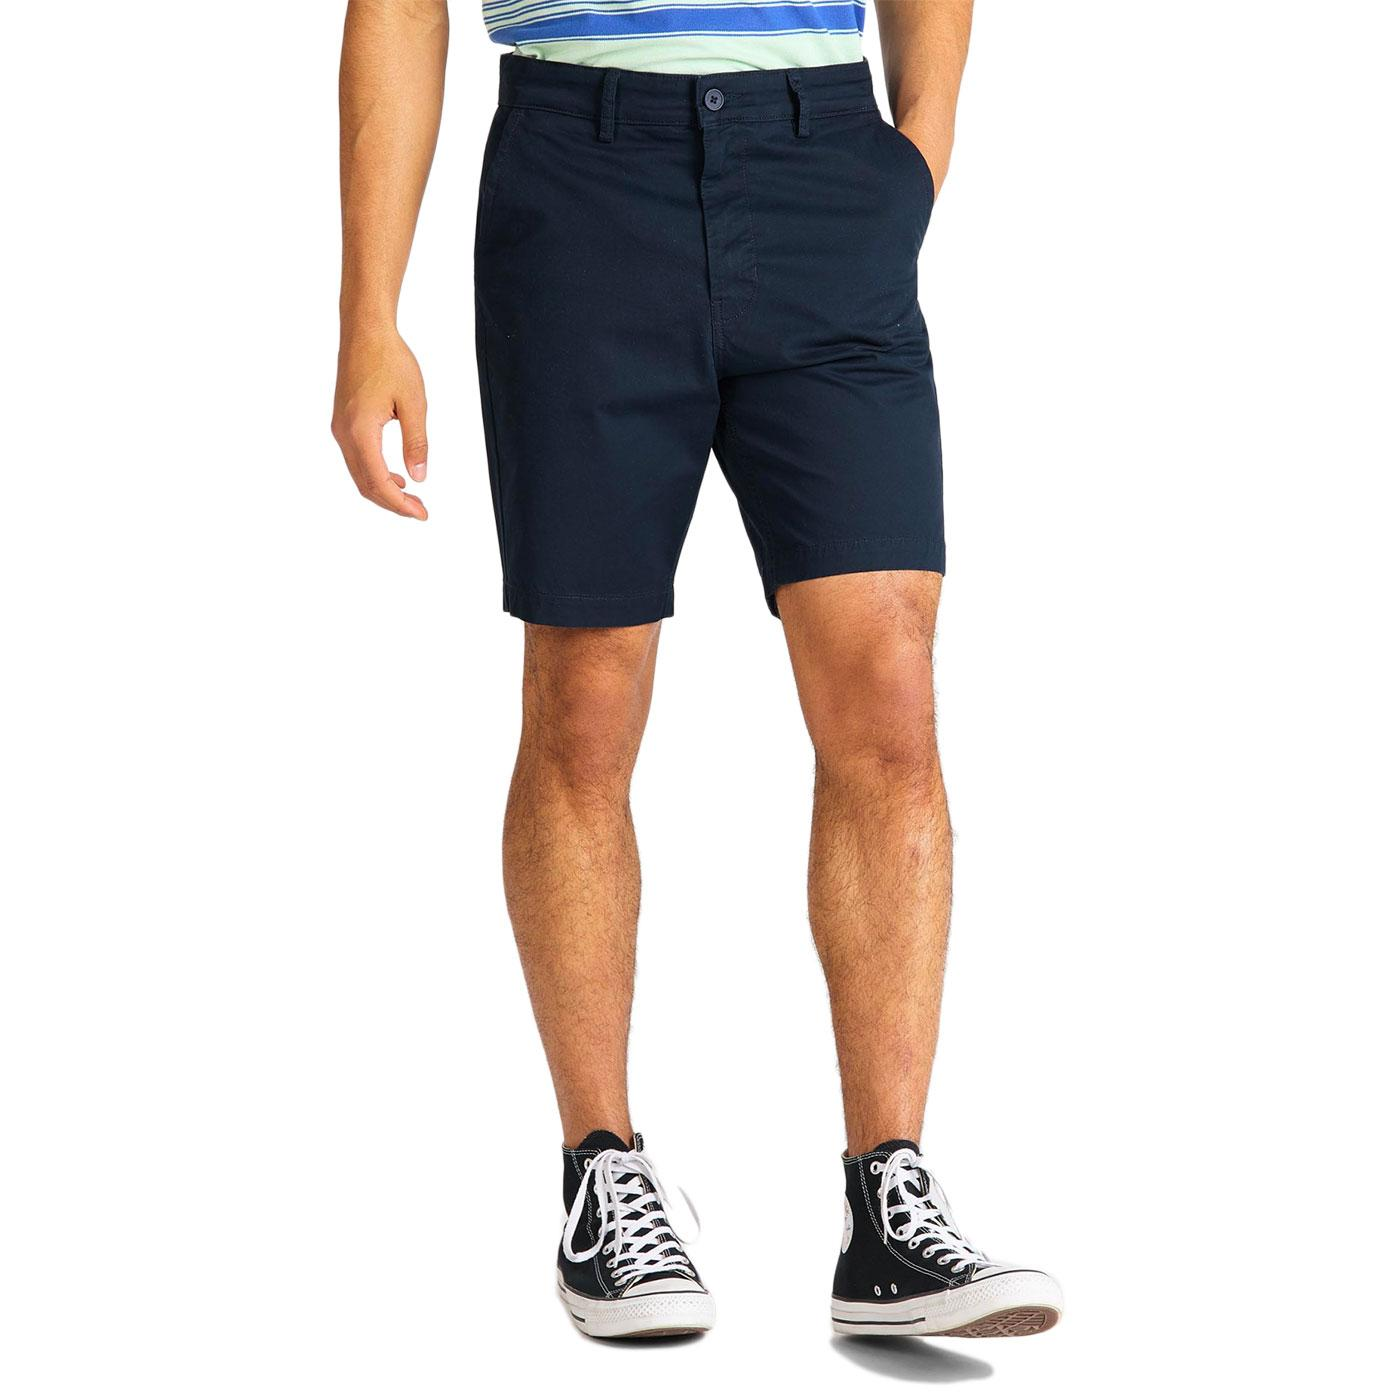 LEE JEANS Men's Retro Slim Fit Chino Shorts (Navy)